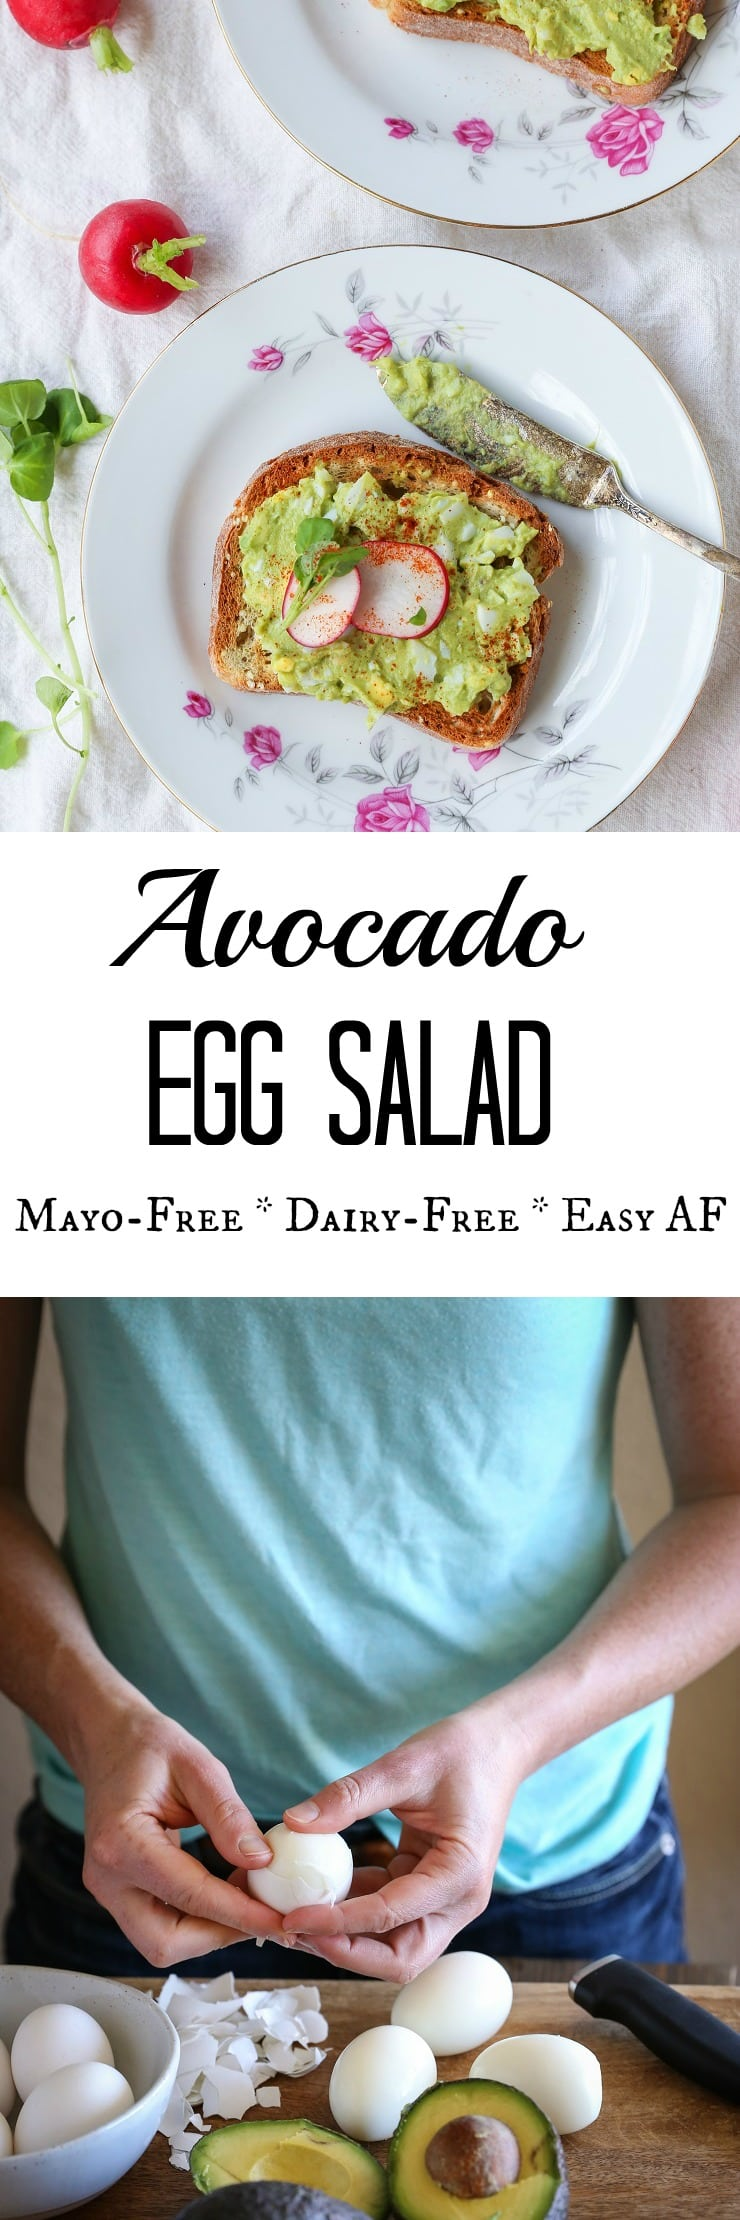 Avocado Egg Salad (Mayo-Free!) - an easy 4-ingredient lunch recipe | theroastedroot.net #glutenfree #dairyfree #healthy